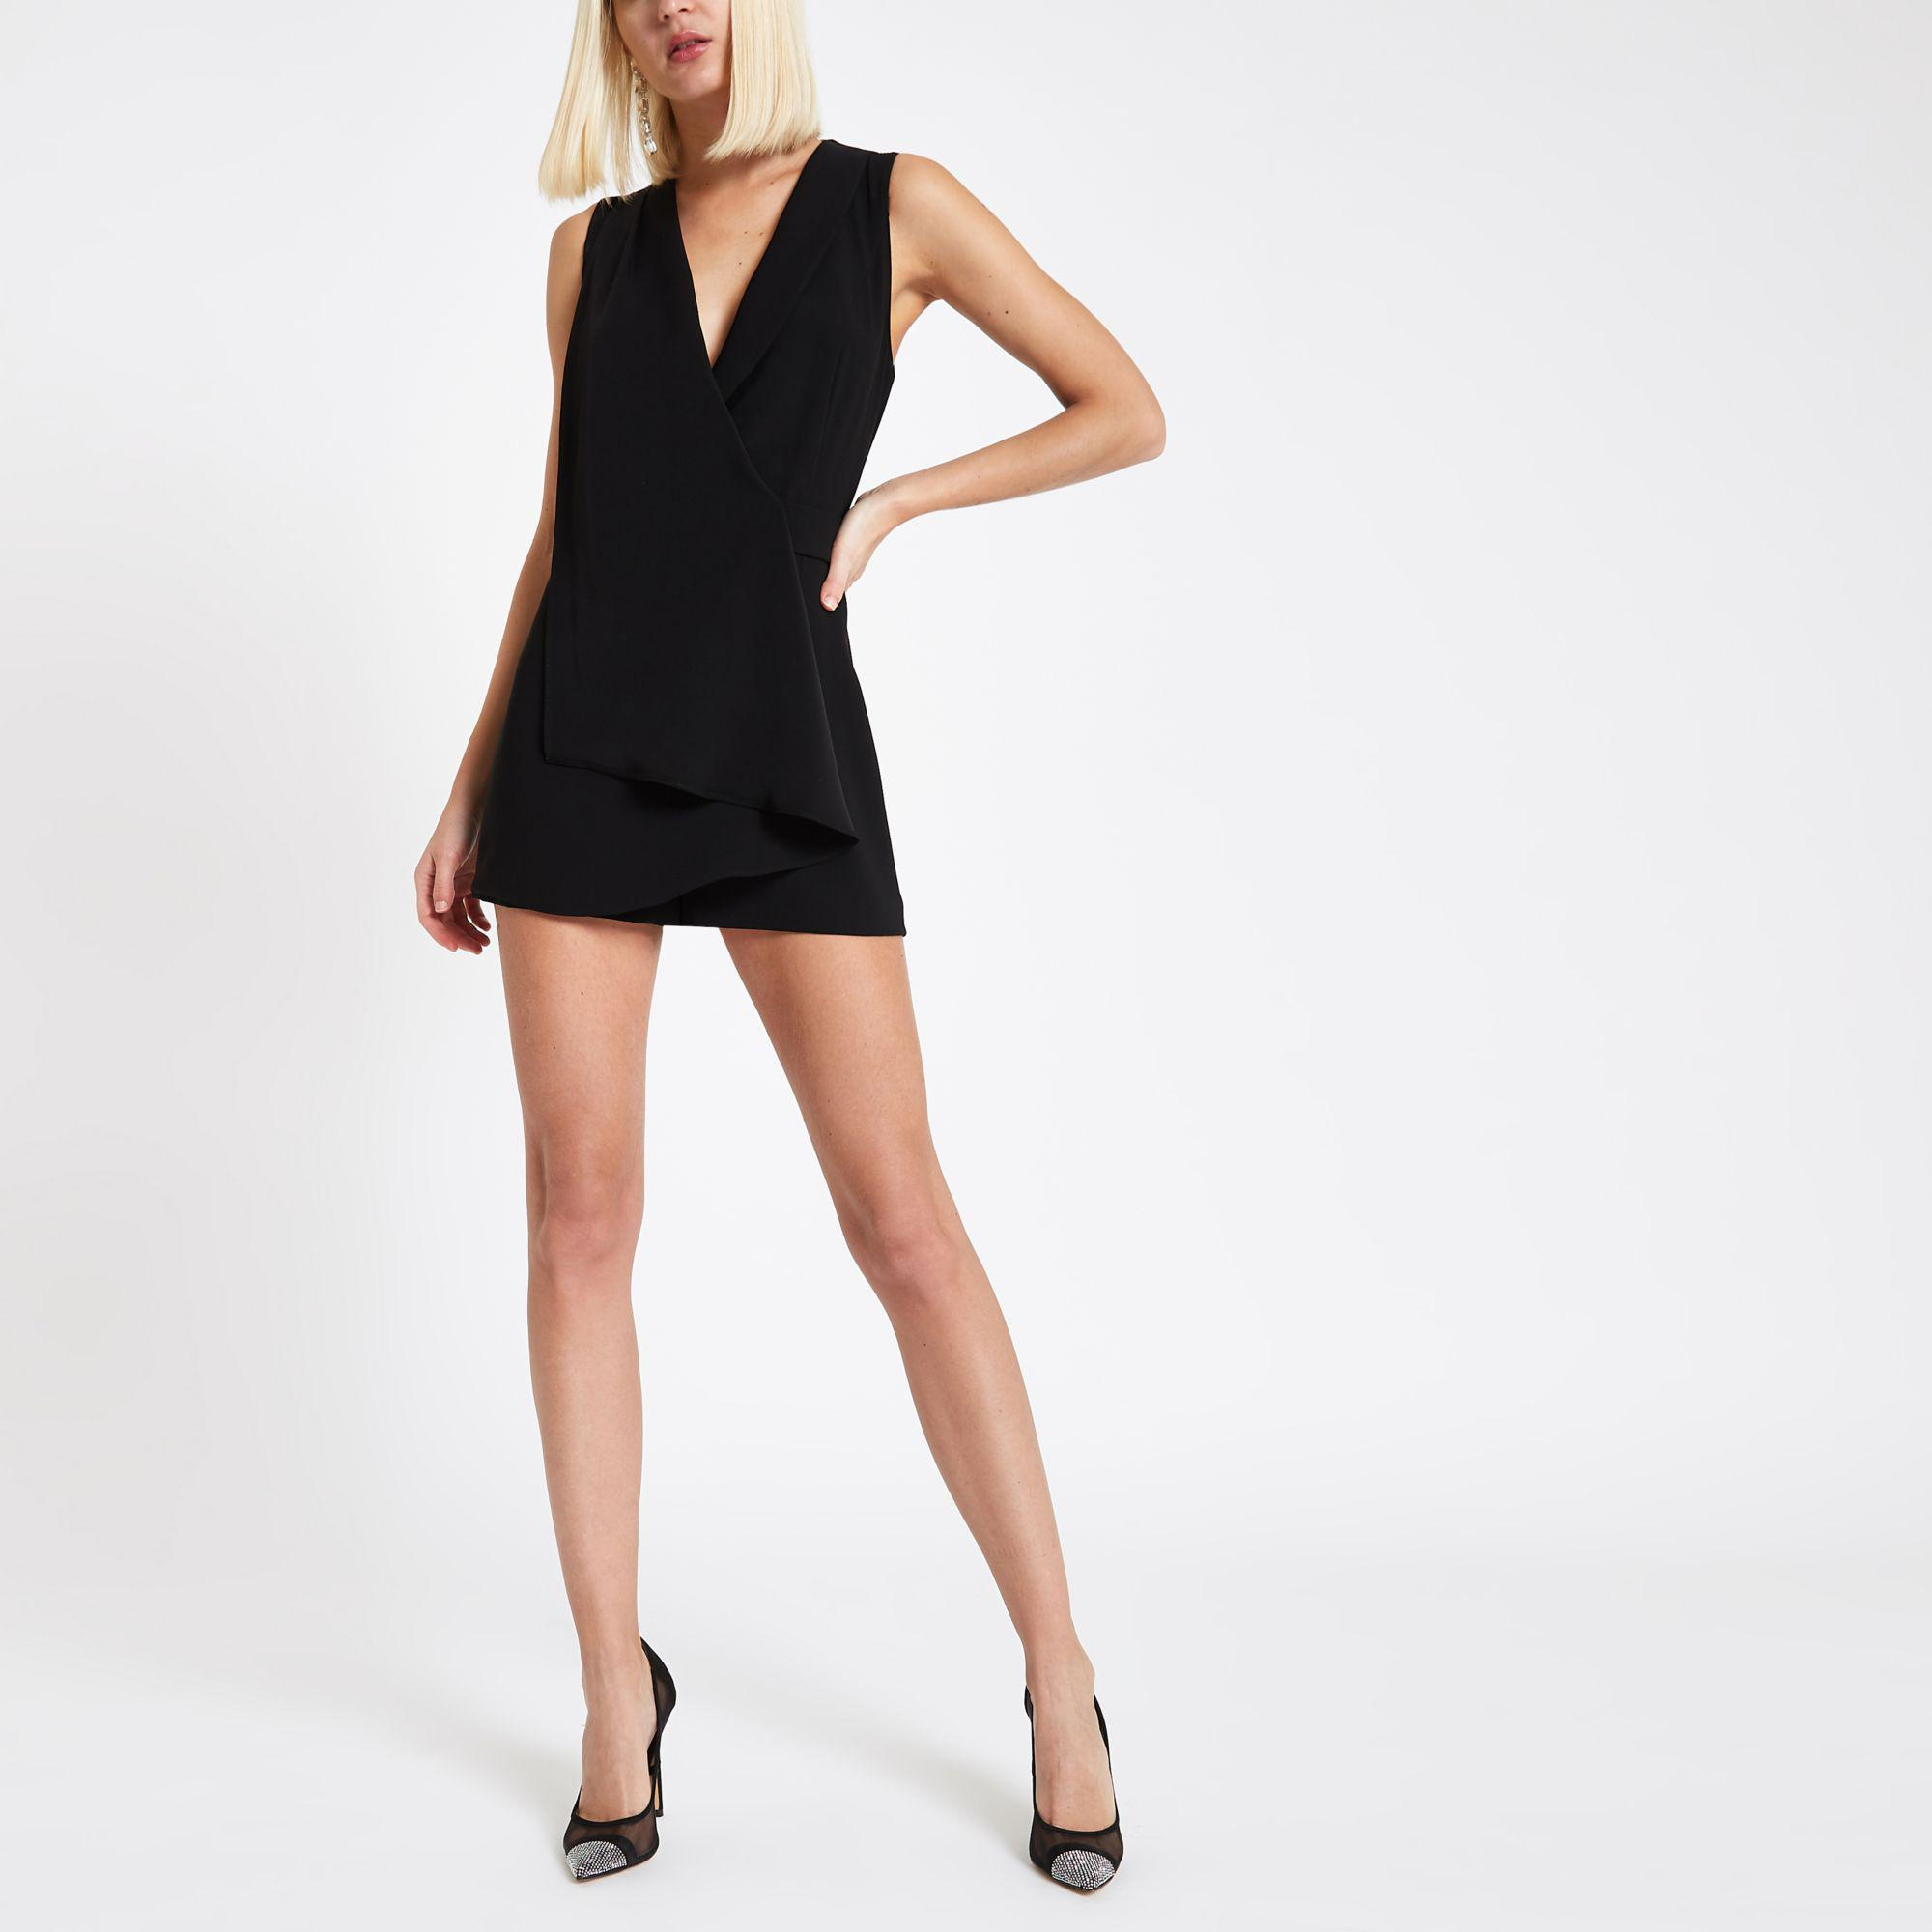 0aade93be05 ... Black Wrap Front Sleeveless Playsuit - Lyst. View fullscreen